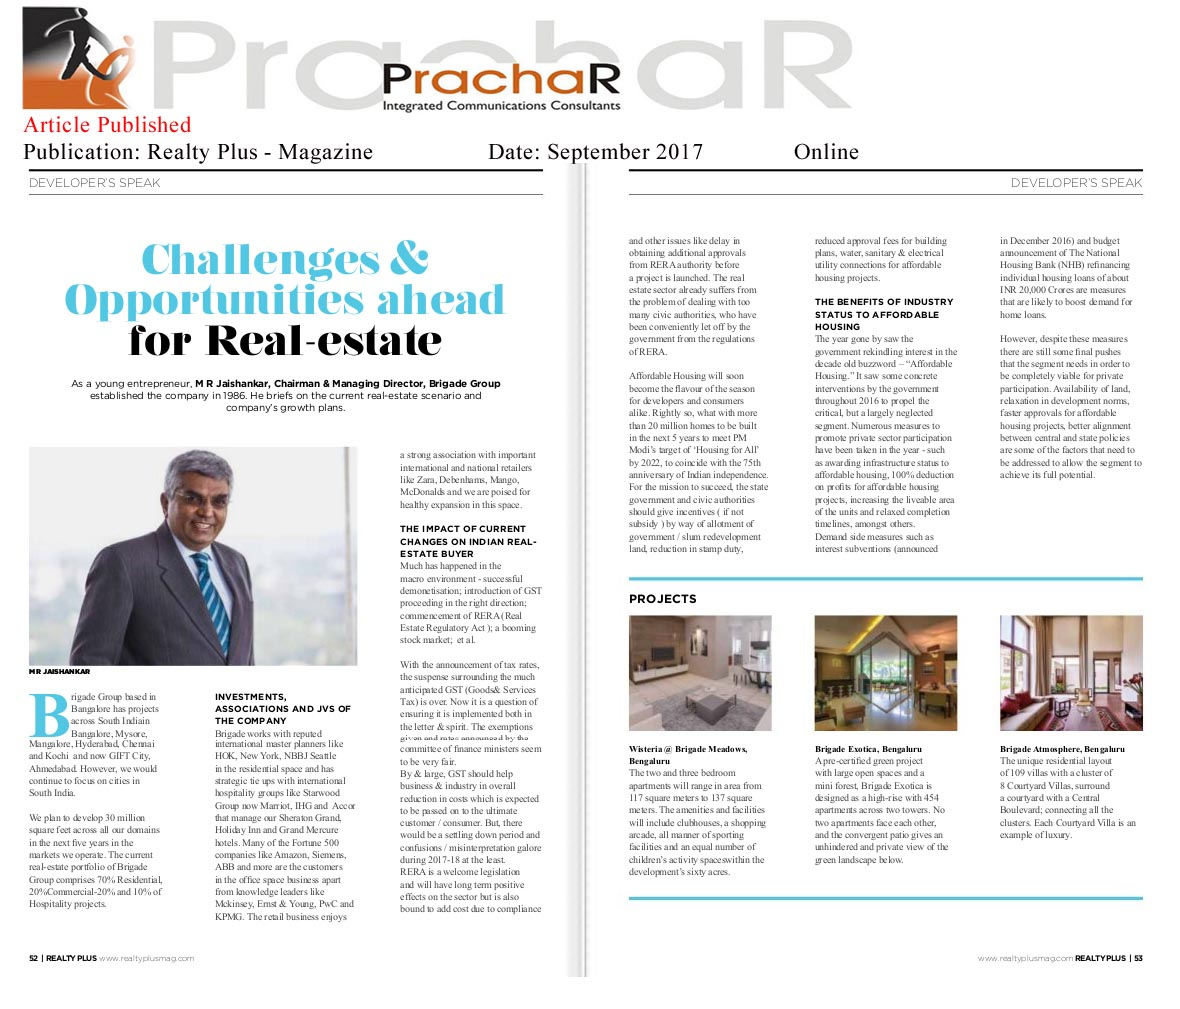 Challenges & Opportunities ahead for Real-estate—Realty Plus-Magazine